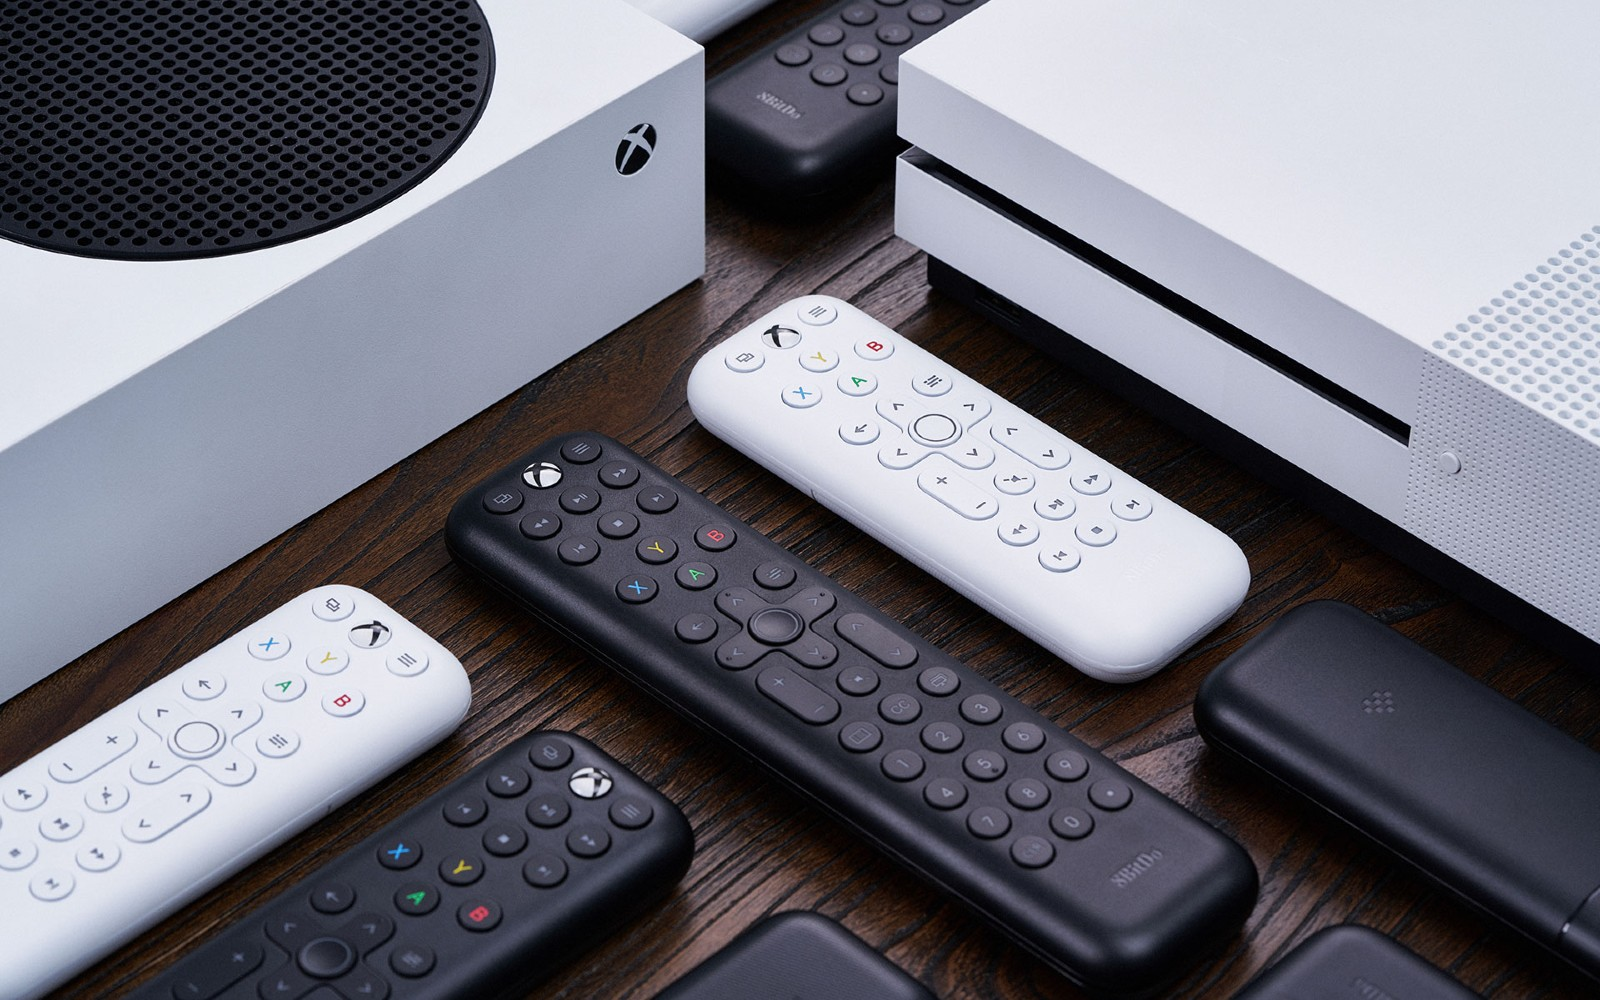 8BitDo made a pair of affordable media remotes for the Xbox Series X/S